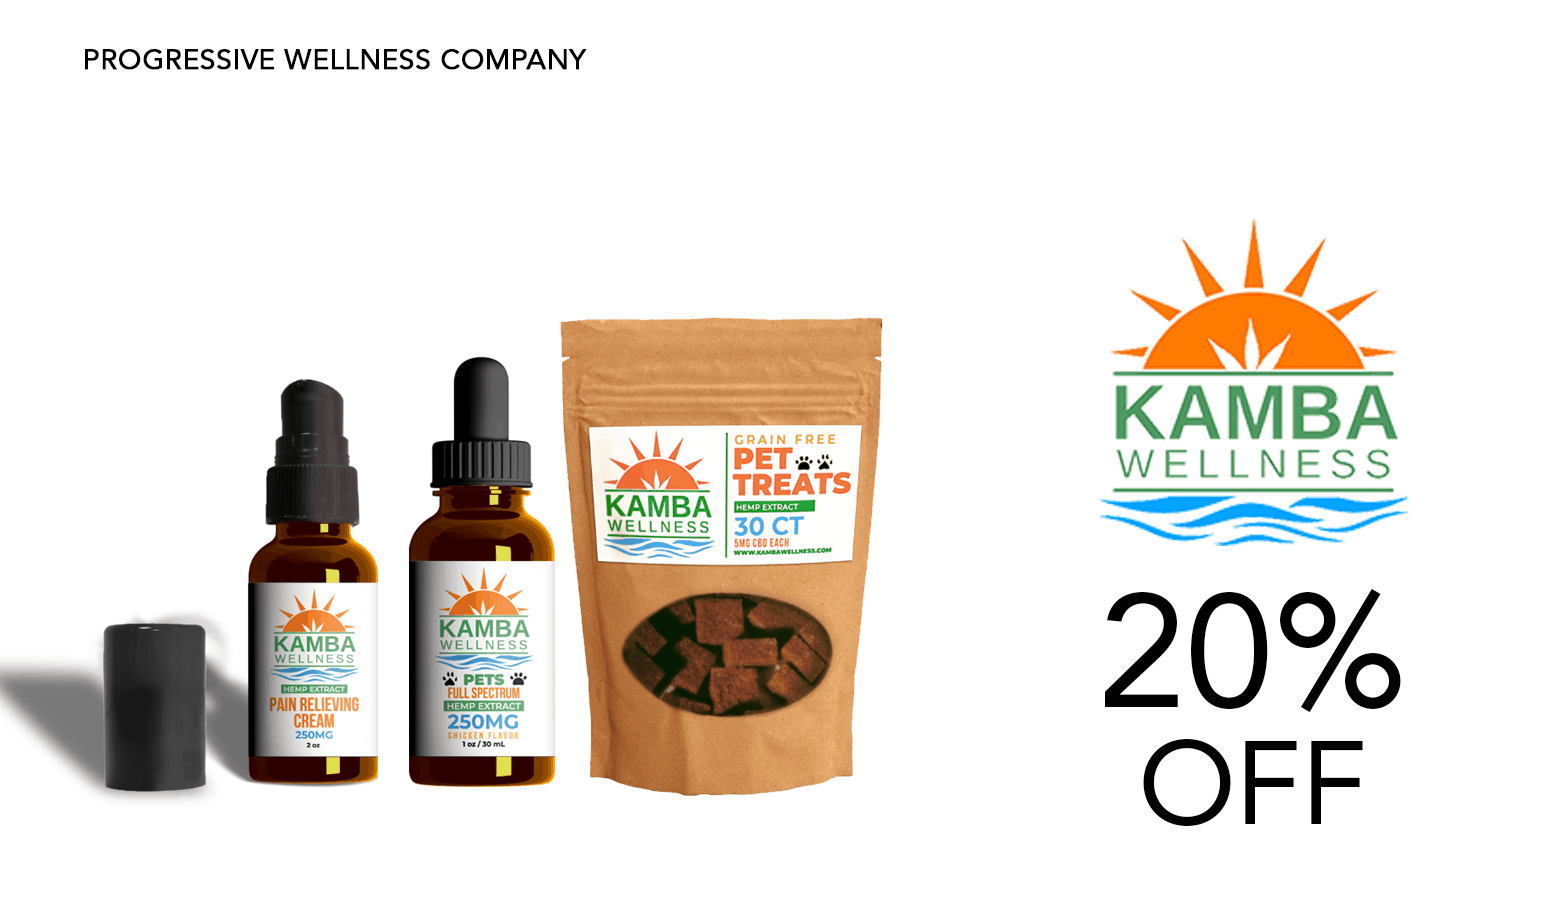 Kamba Wellness CBD Coupon Code Offer Website